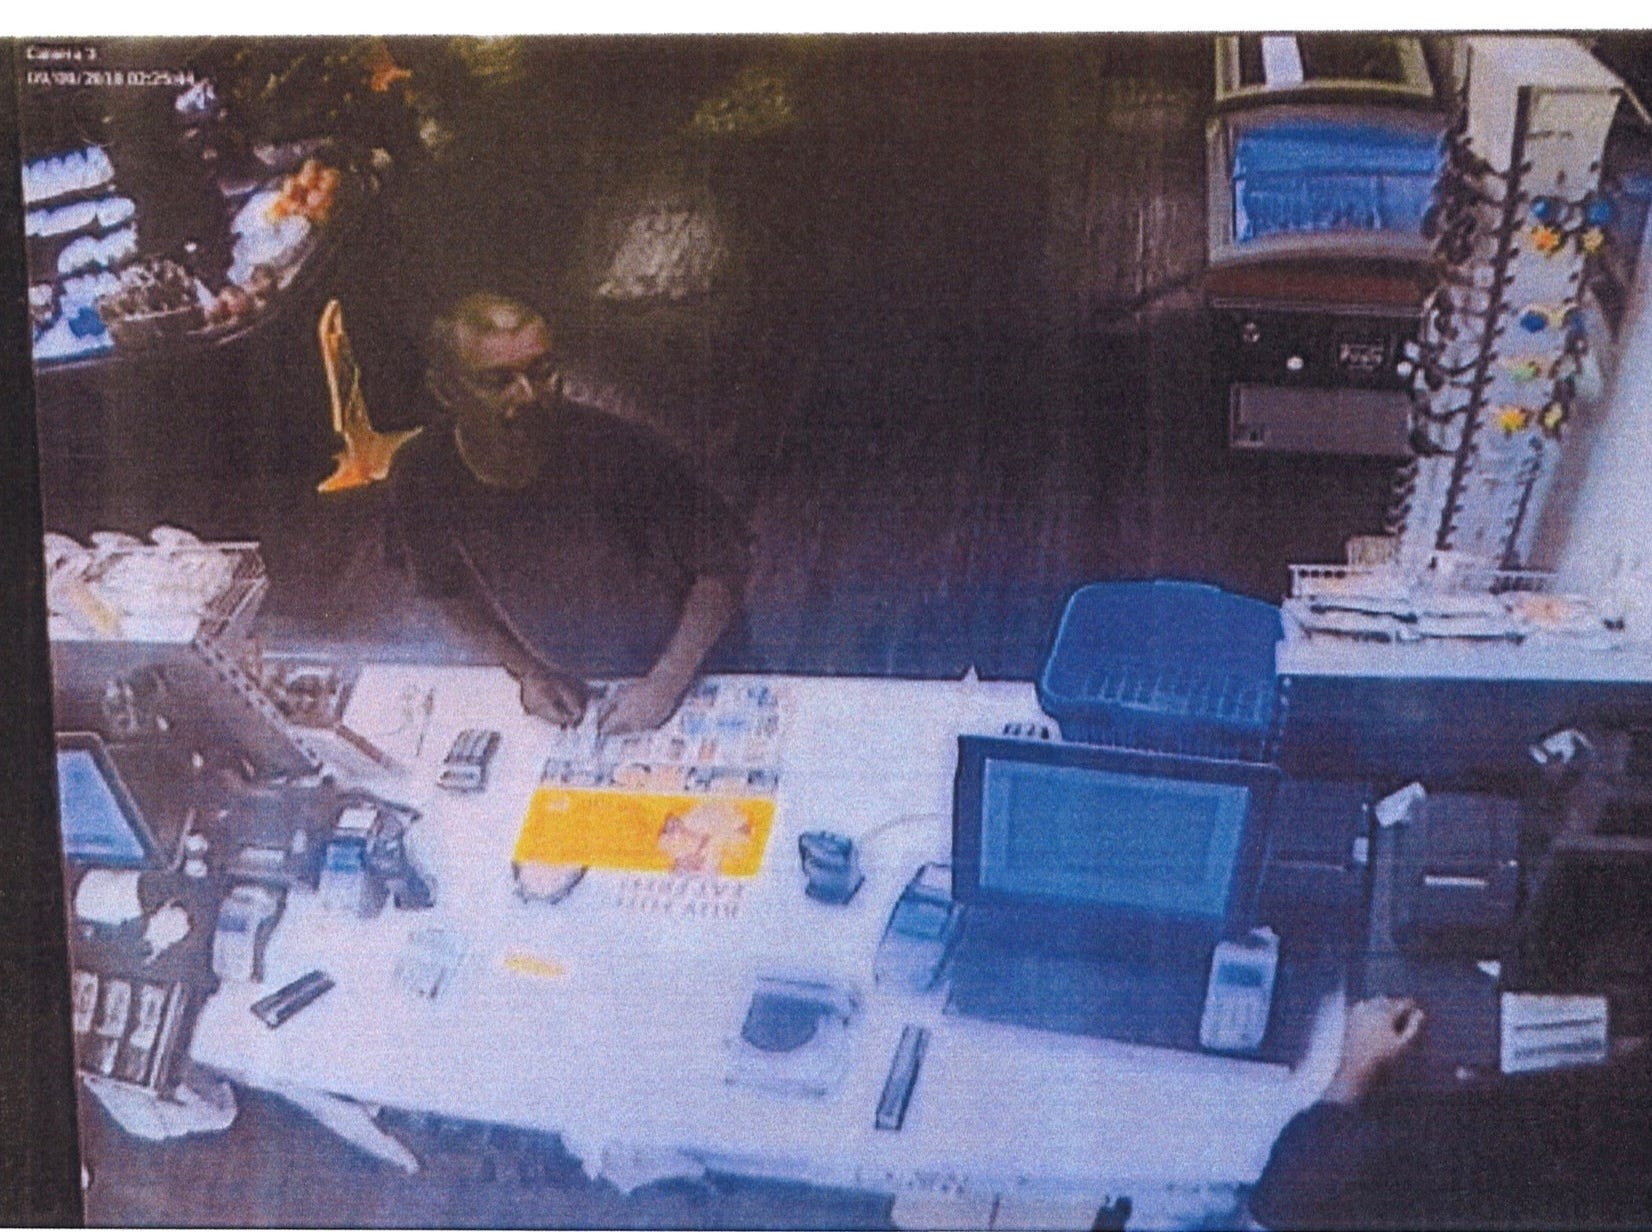 This photo from surveillance footage provided by Reaction Co. President Randy Sager shows a man who they suspect used a stolen gas card on Sept. 9.